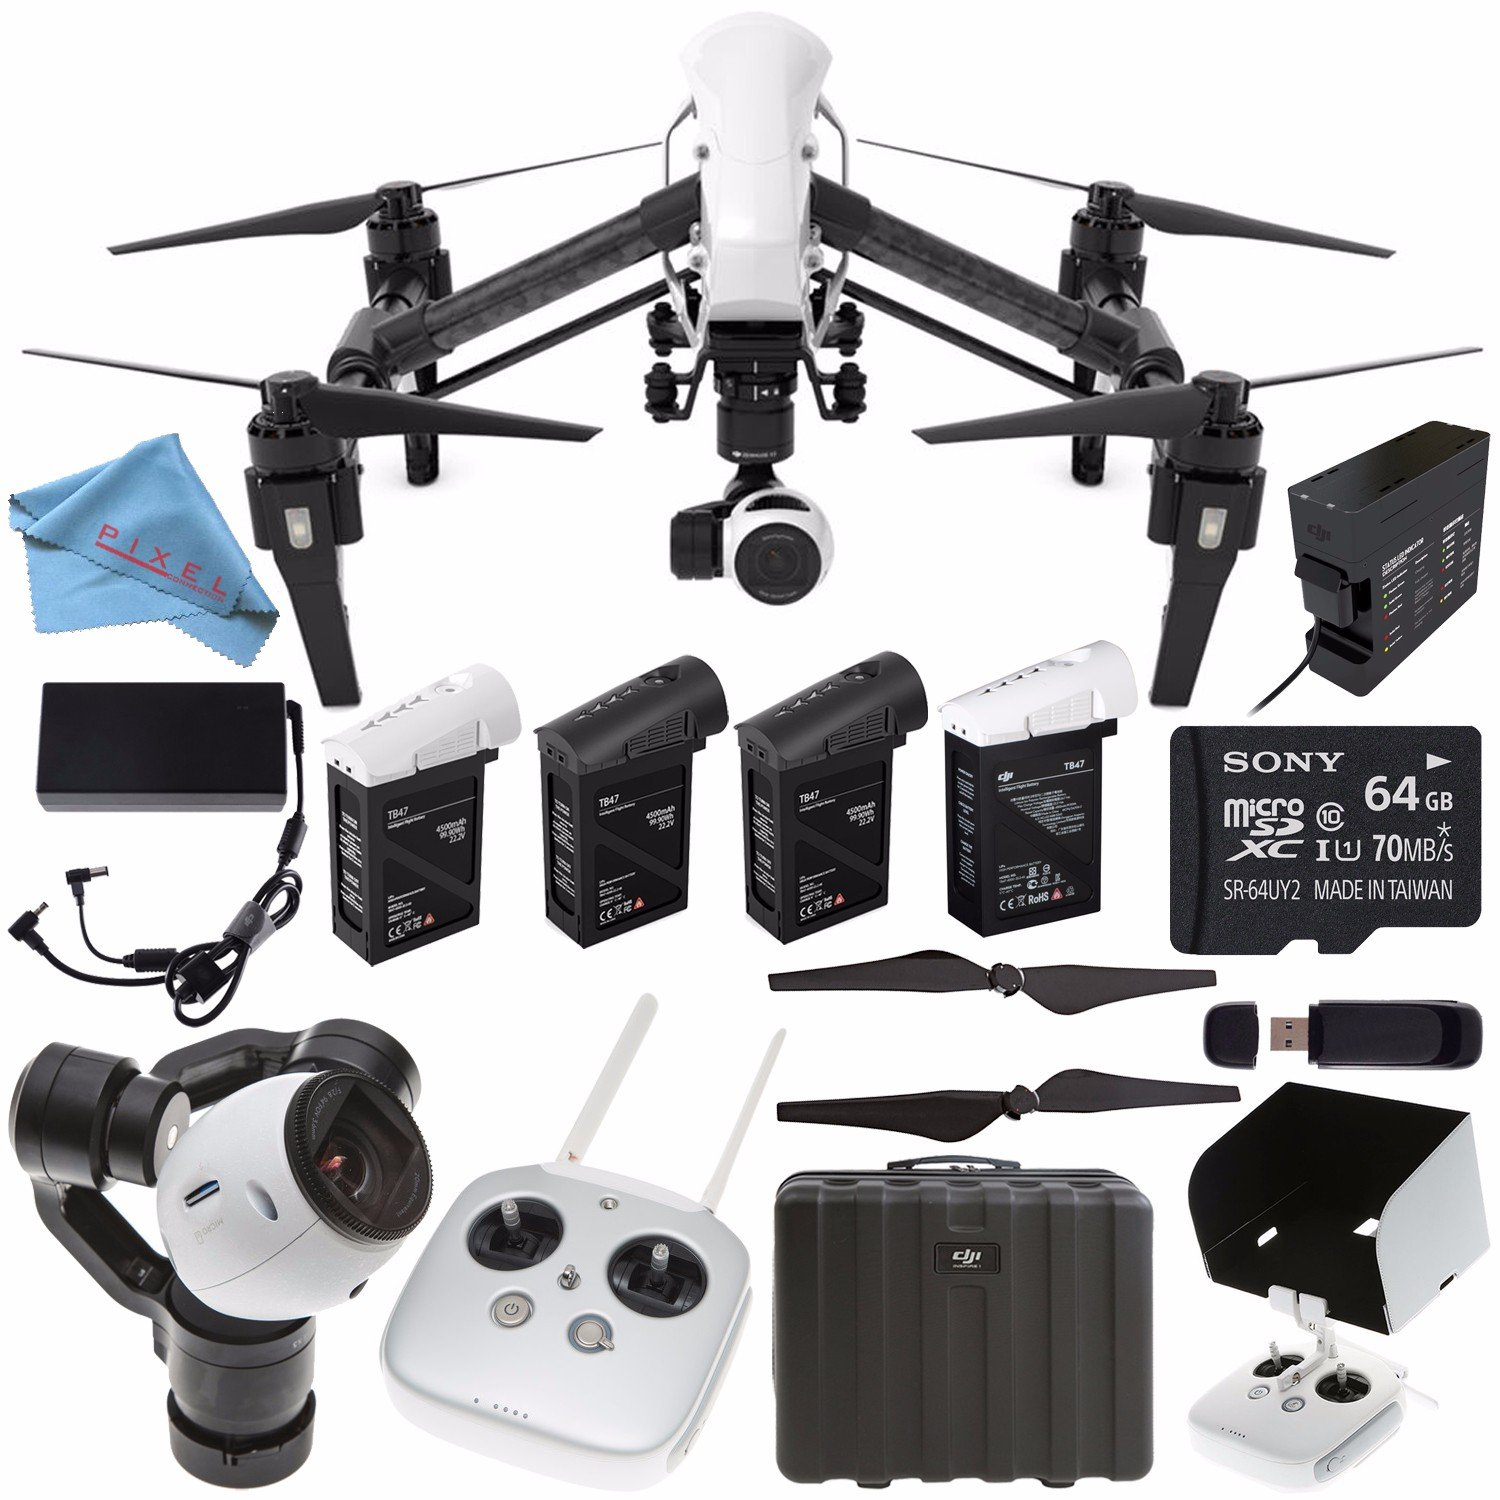 DJI Inspire 1 v2.0 Quadcopter with 4K Camera and 3-Axis Gimbal (Certified Refurbished) + Remote Controller Monitor Hood + Intelligent Flight Battery + 64GB microSDXC Bundle